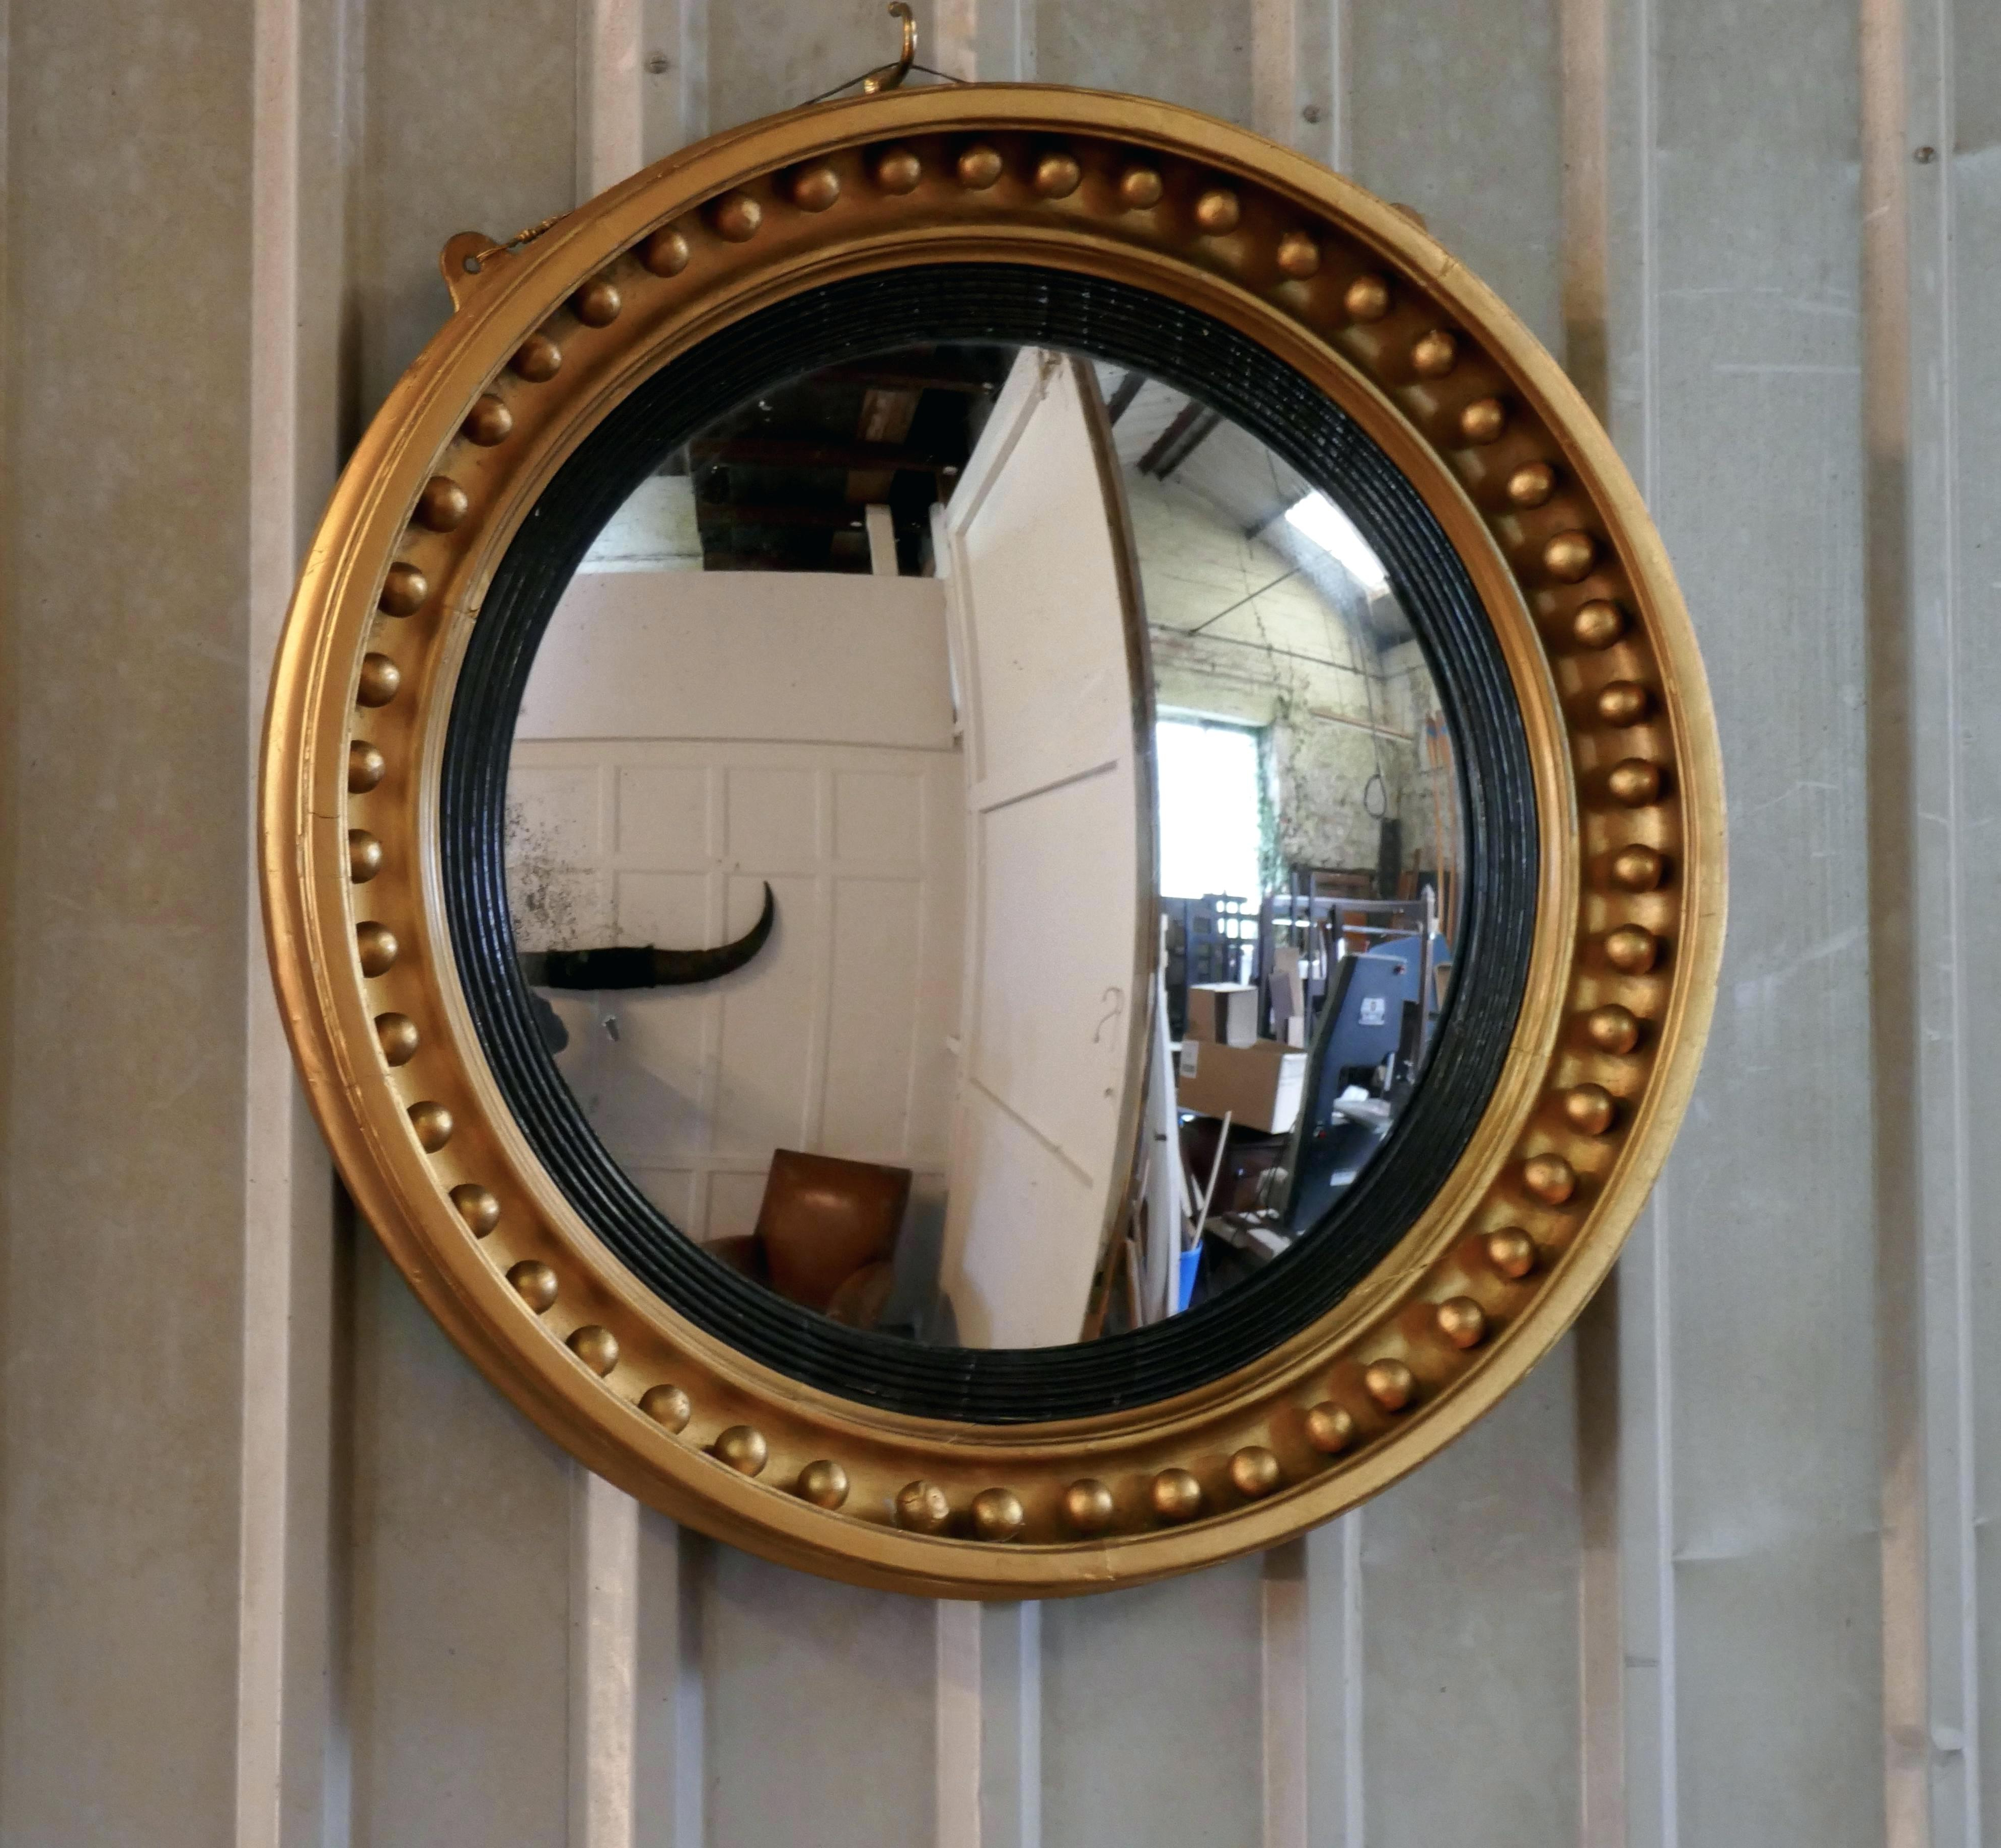 Convex Wall Mirrors Within Widely Used Convex Wall Mirrors – Shakirajames (View 18 of 20)